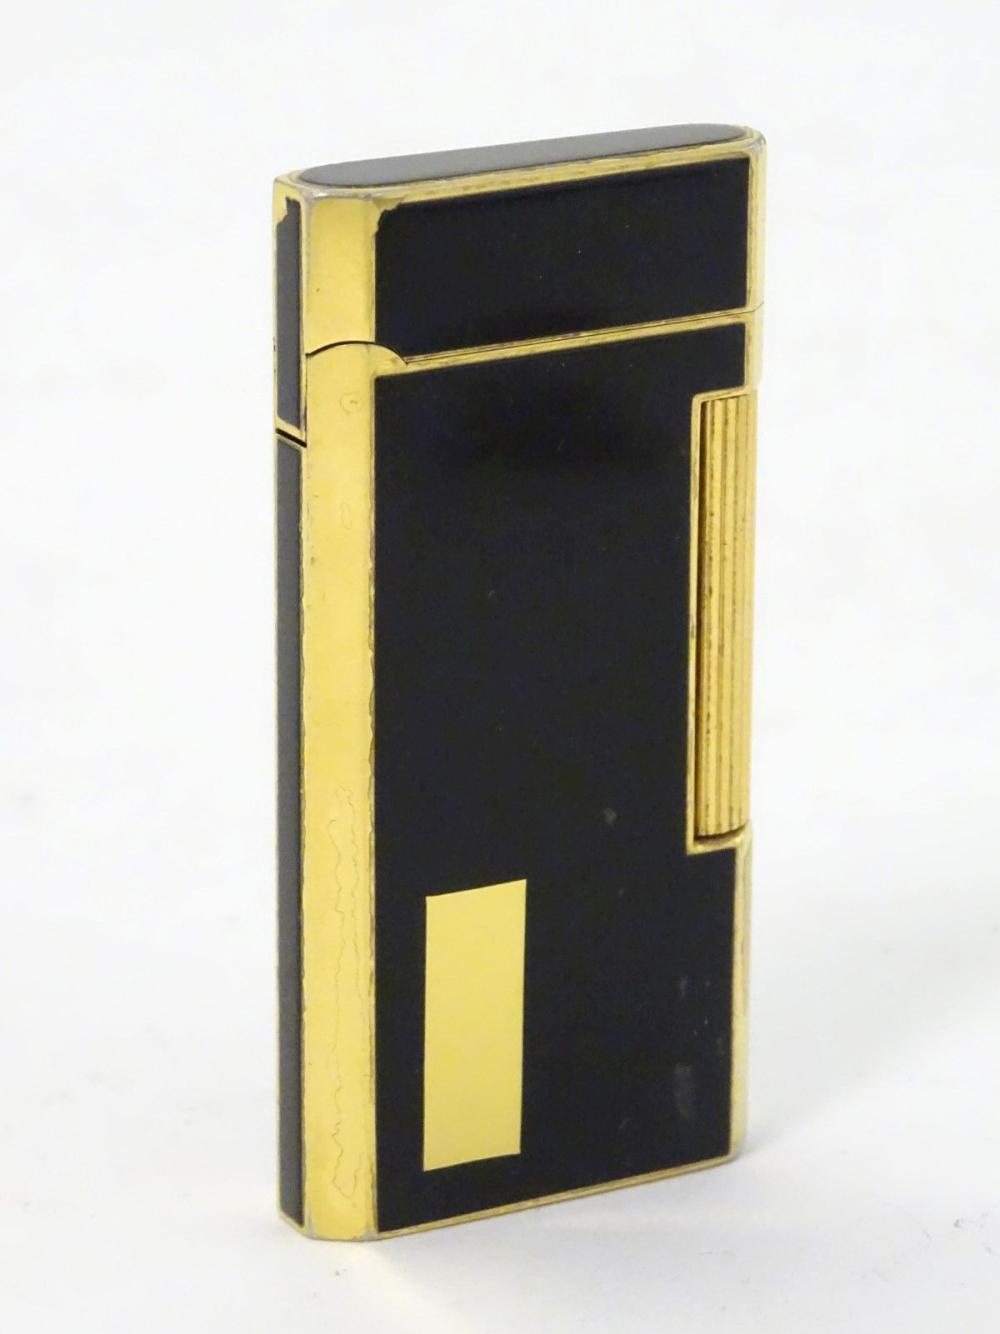 48447afd2 A black lacquer and gold plated Ronson roller cigarette lighter. Approx. 2  1/